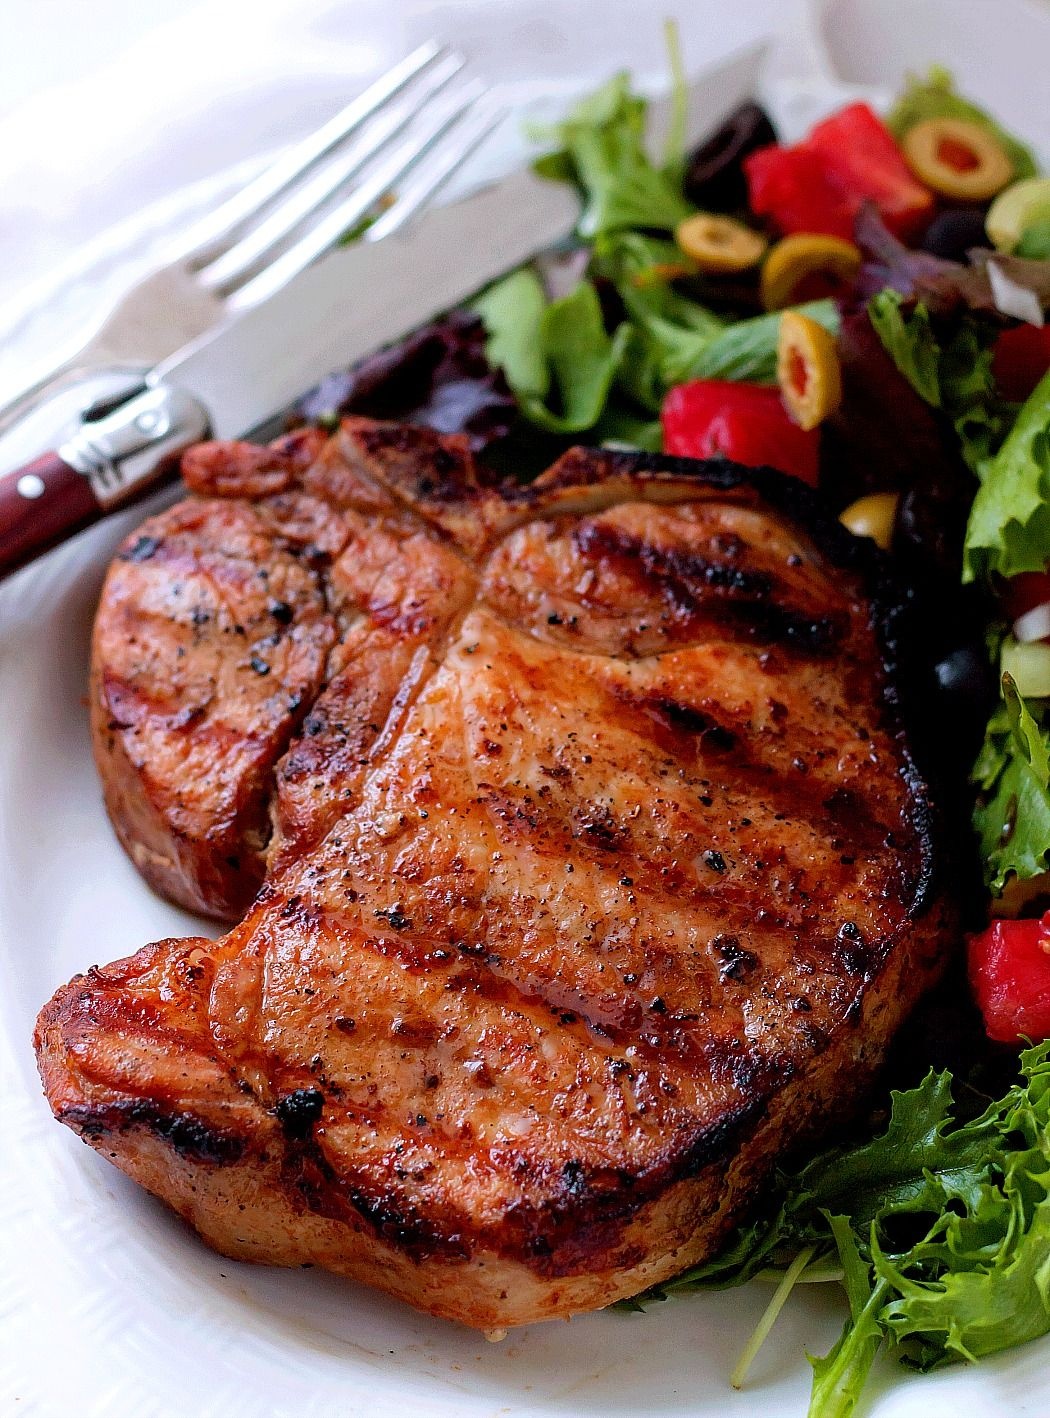 Grilled pork chop marinade will make your grilled pork chops grilled pork chop marinade will make your grilled pork chops tender juicy and delicious ccuart Image collections